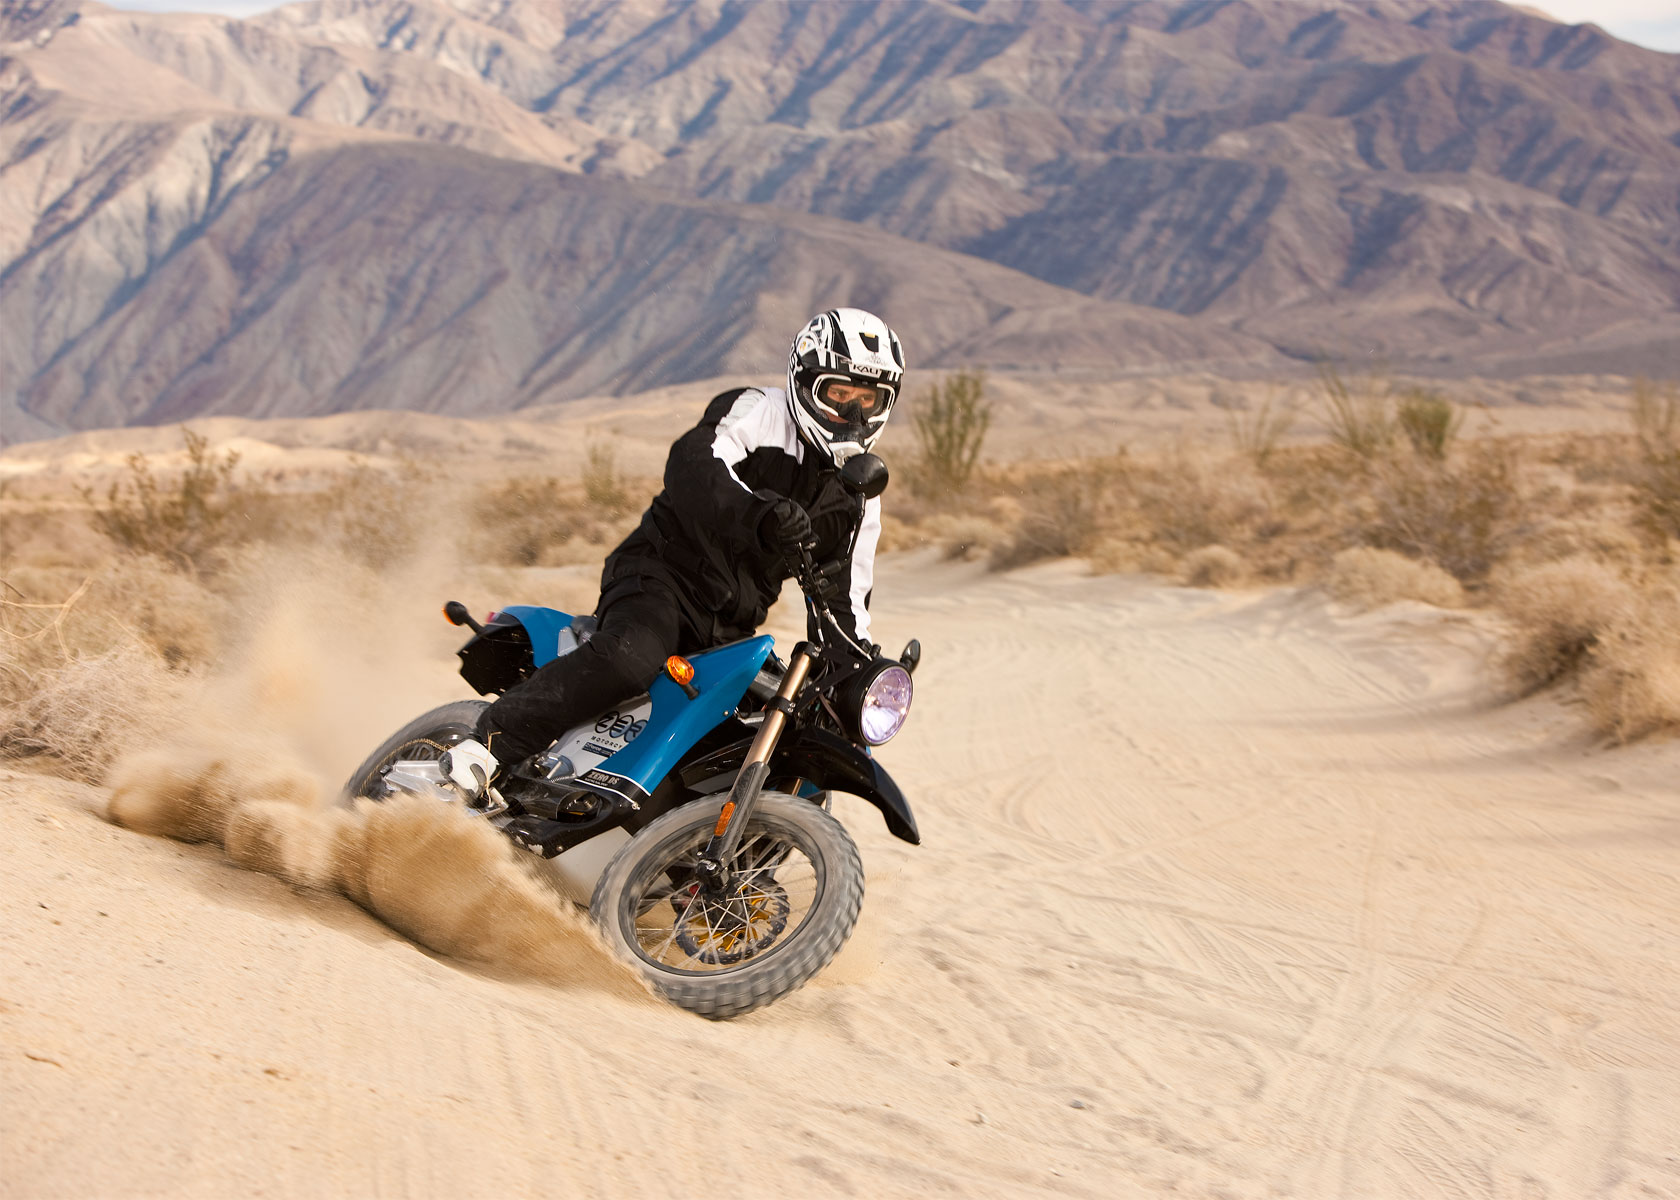 '.2010 Zero DS Electric Motorcycle: Anza Borego - Fishtail in Sand.'